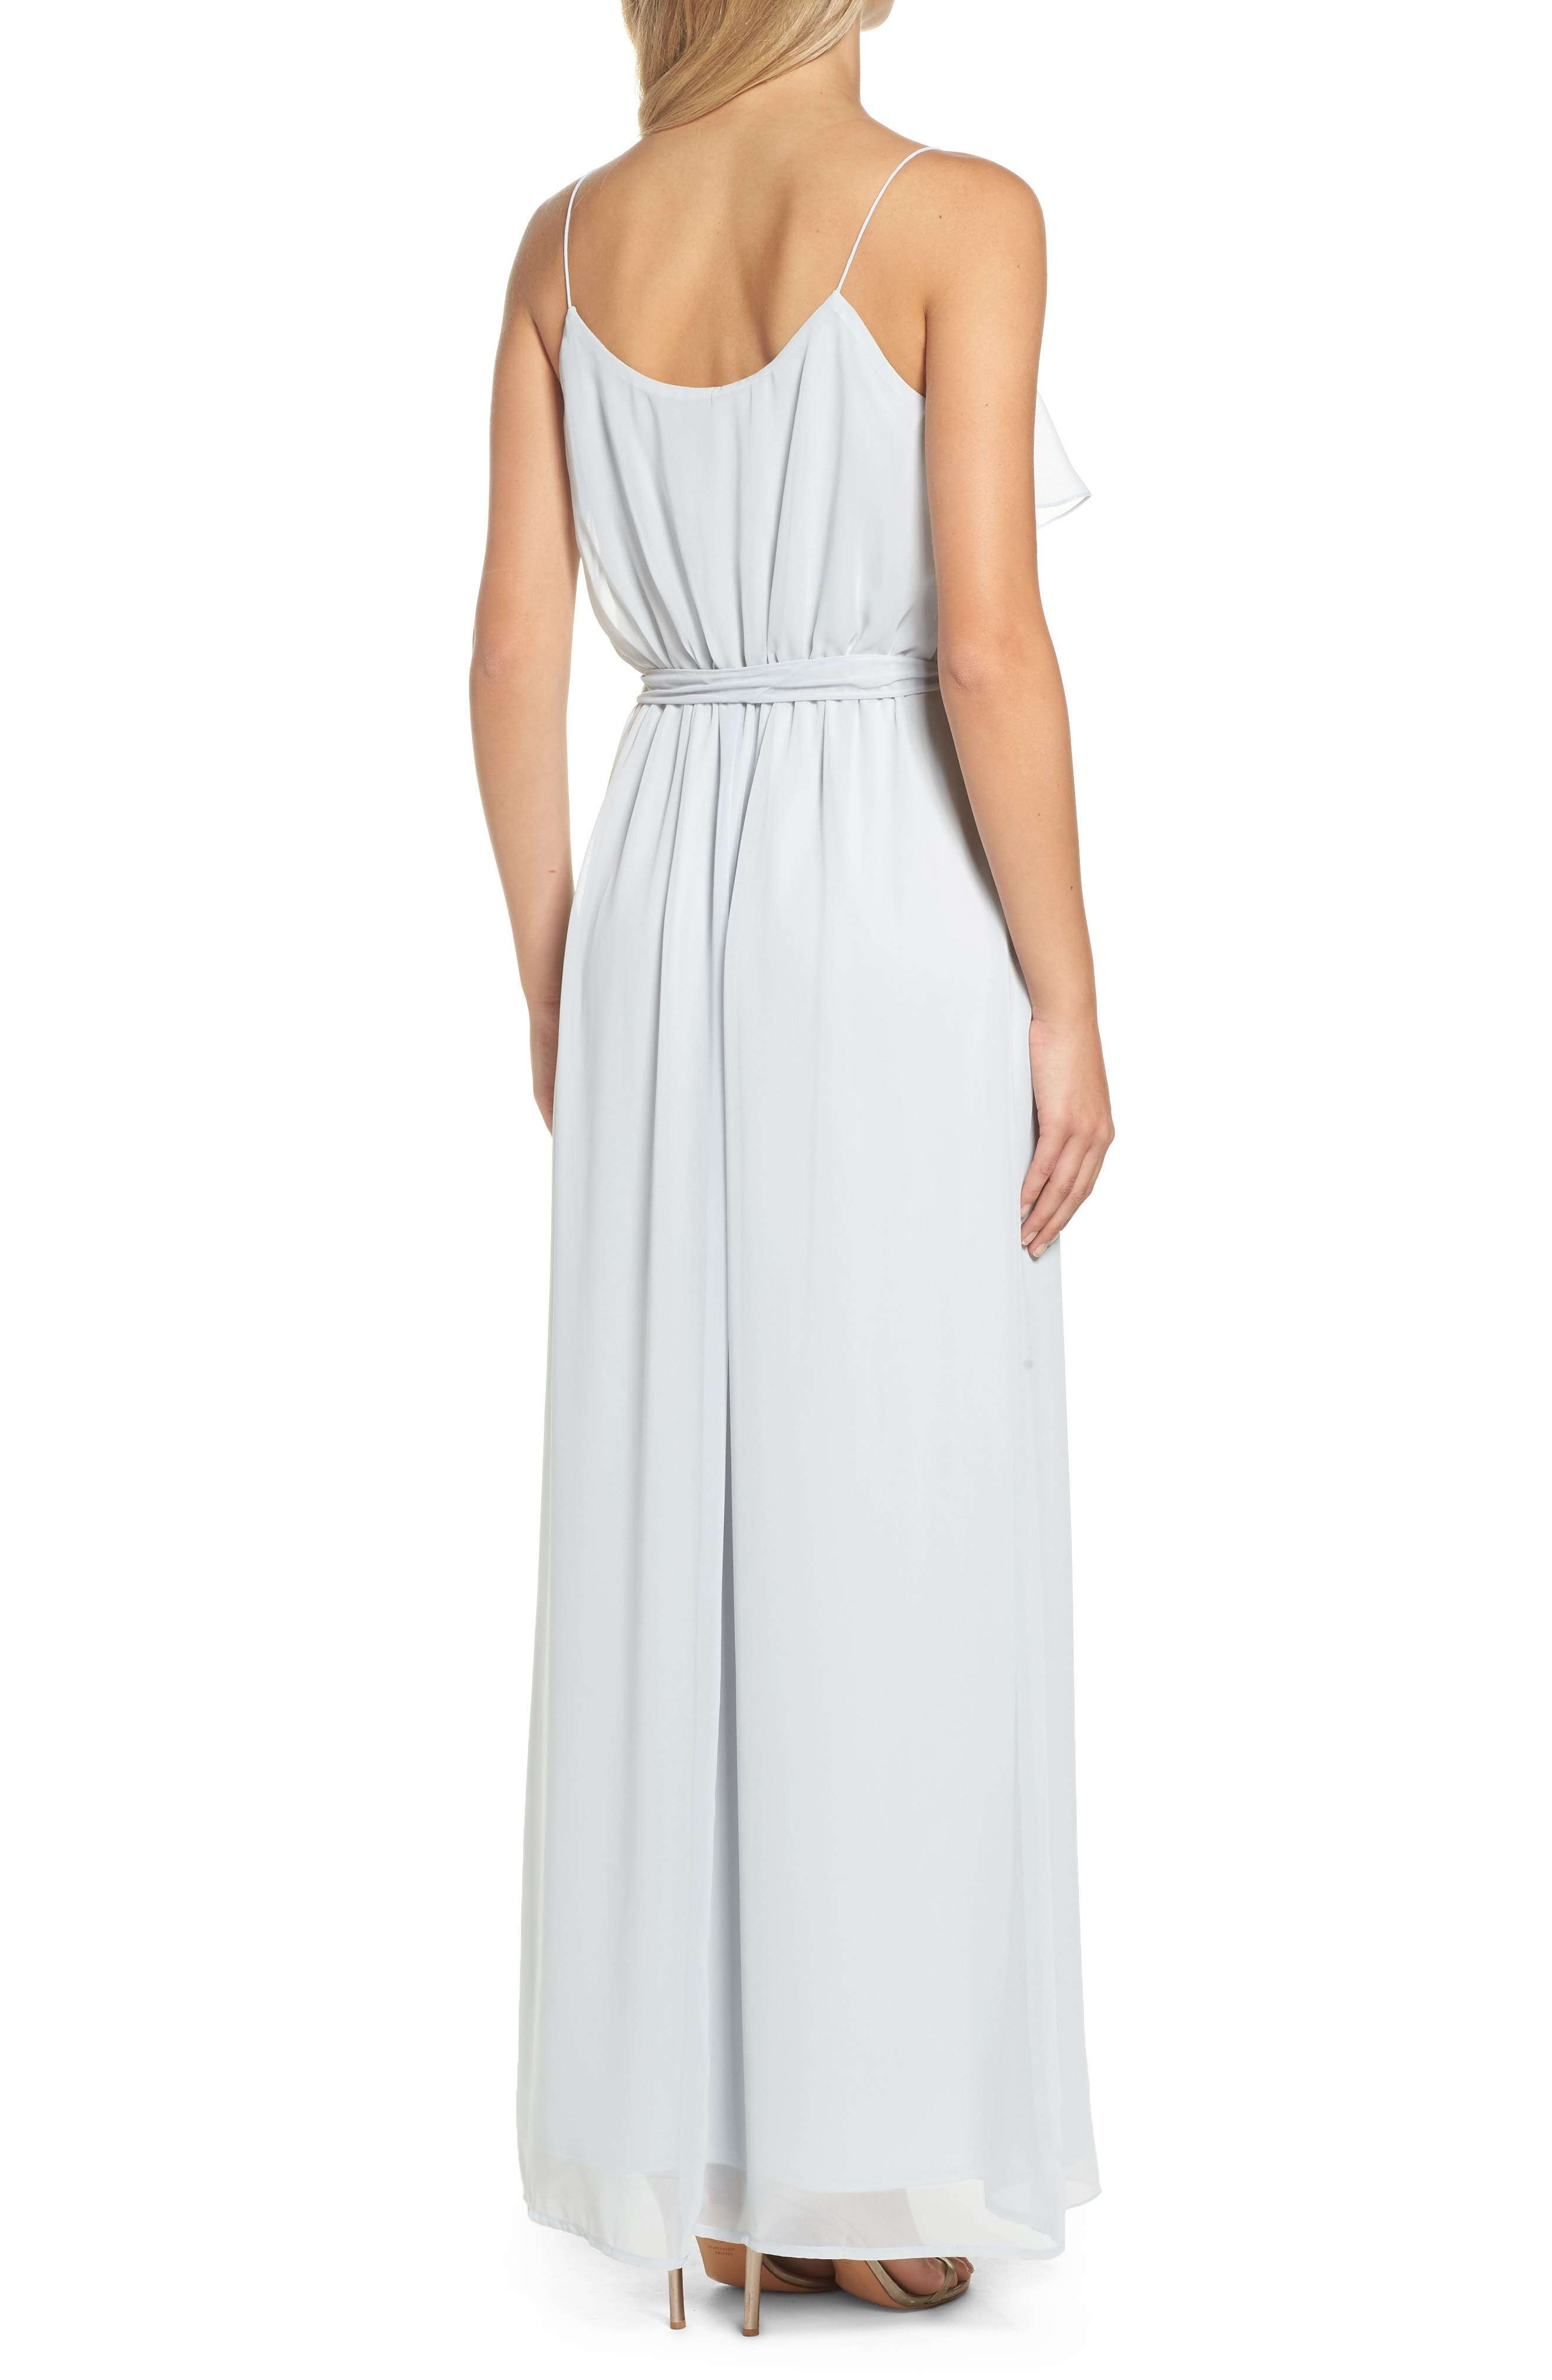 'Drew' Ruffle Front Chiffon Gown,                             Alternate thumbnail 2, color,                             052